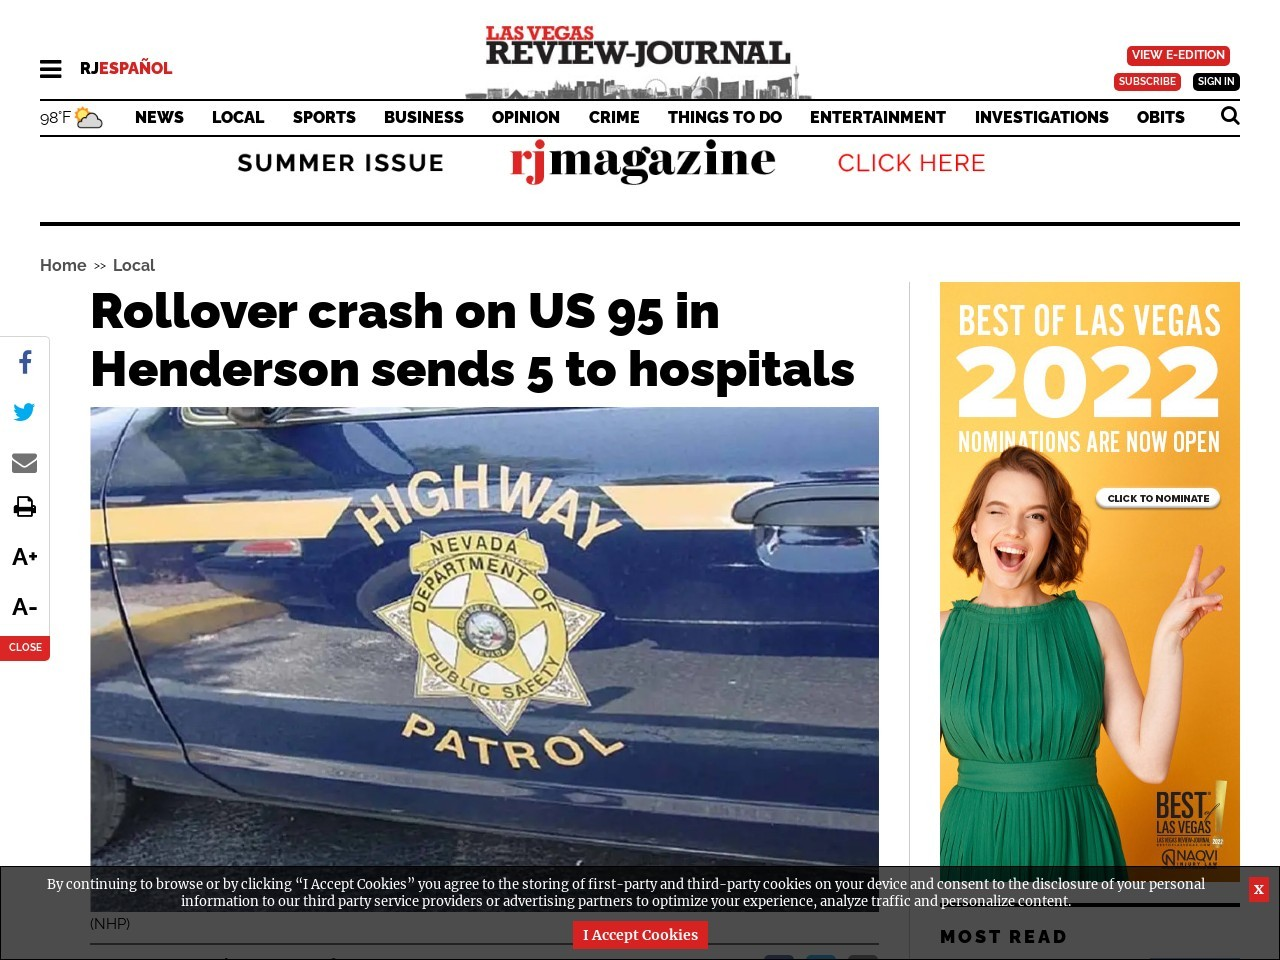 Rollover crash on US 95 in Henderson sends 5 to hospitals